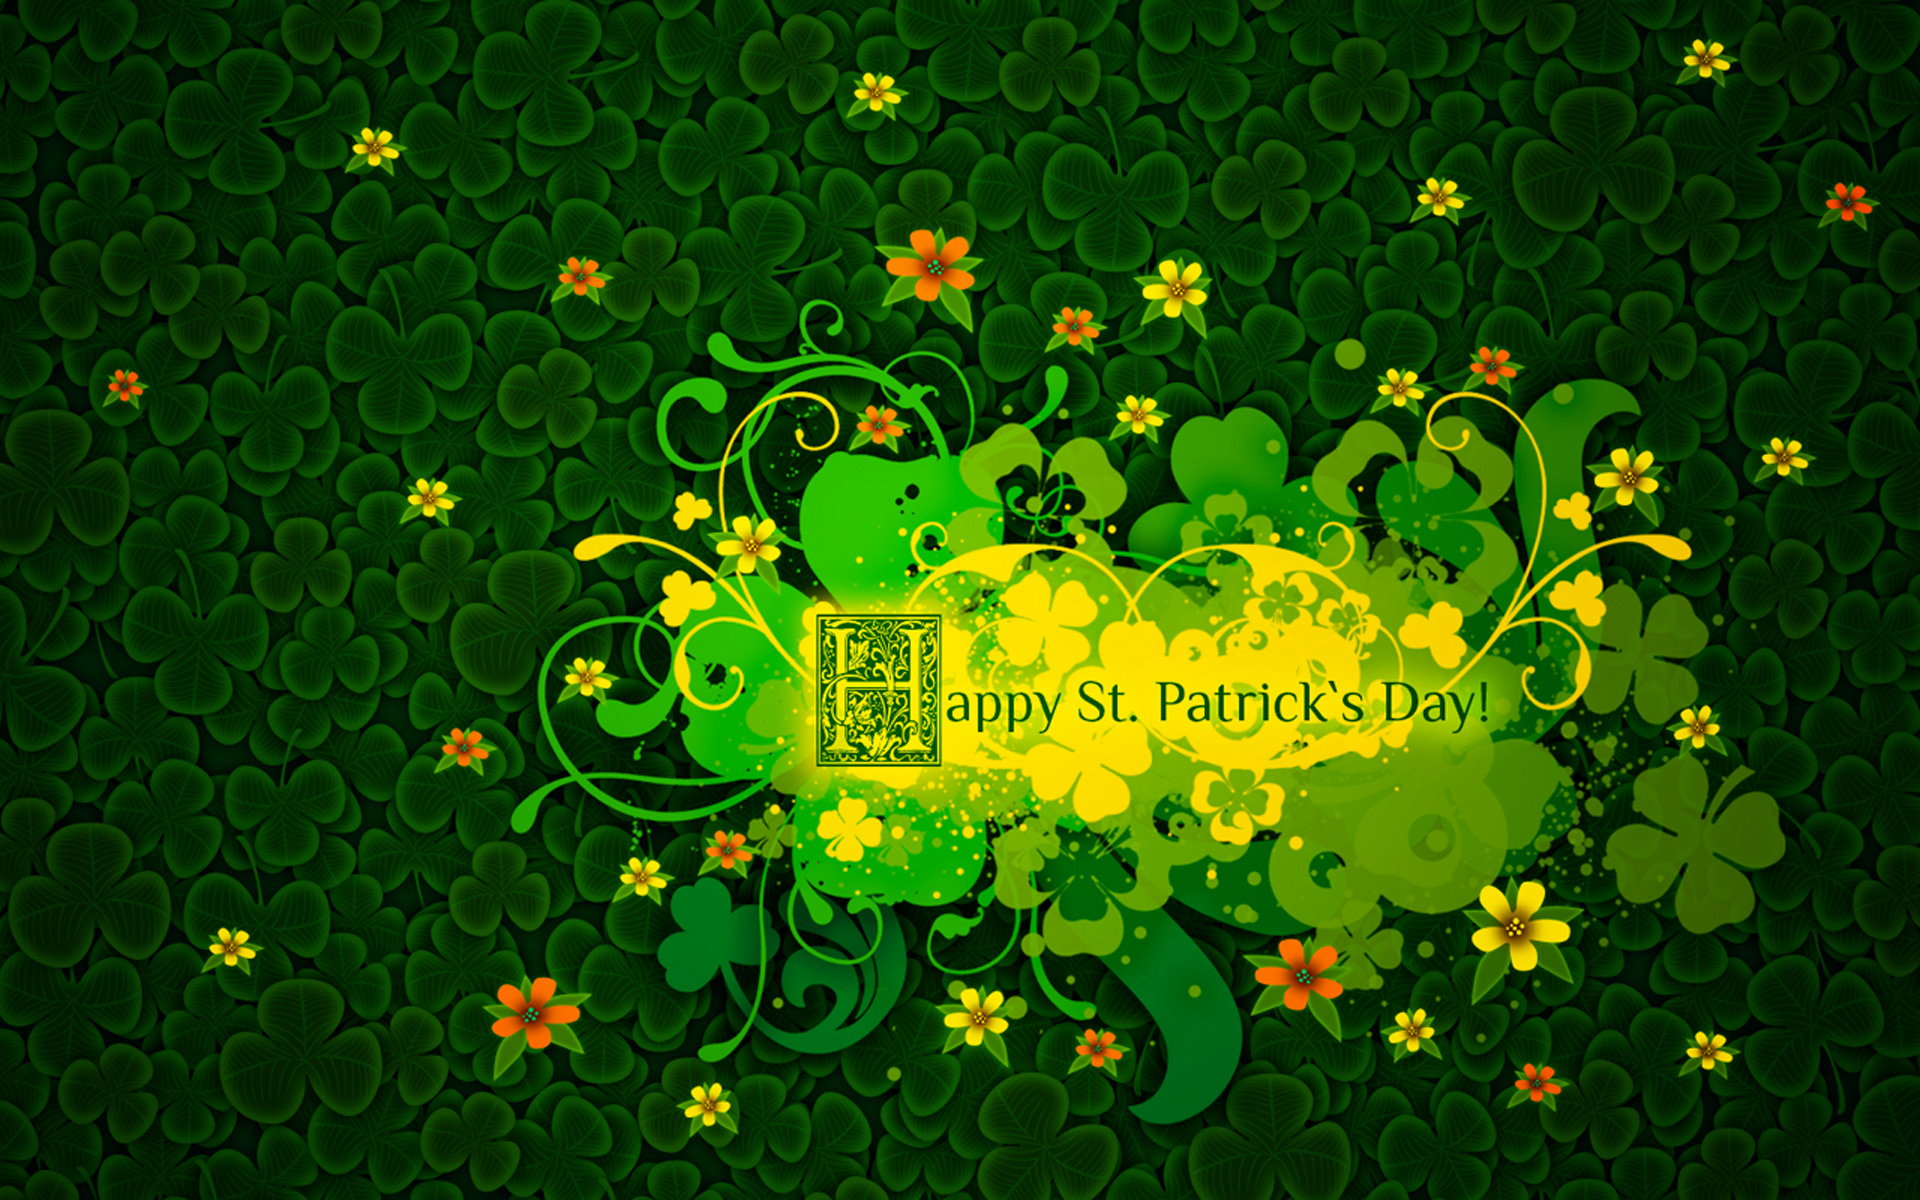 St Patrick's Day wallpaper - 1188218